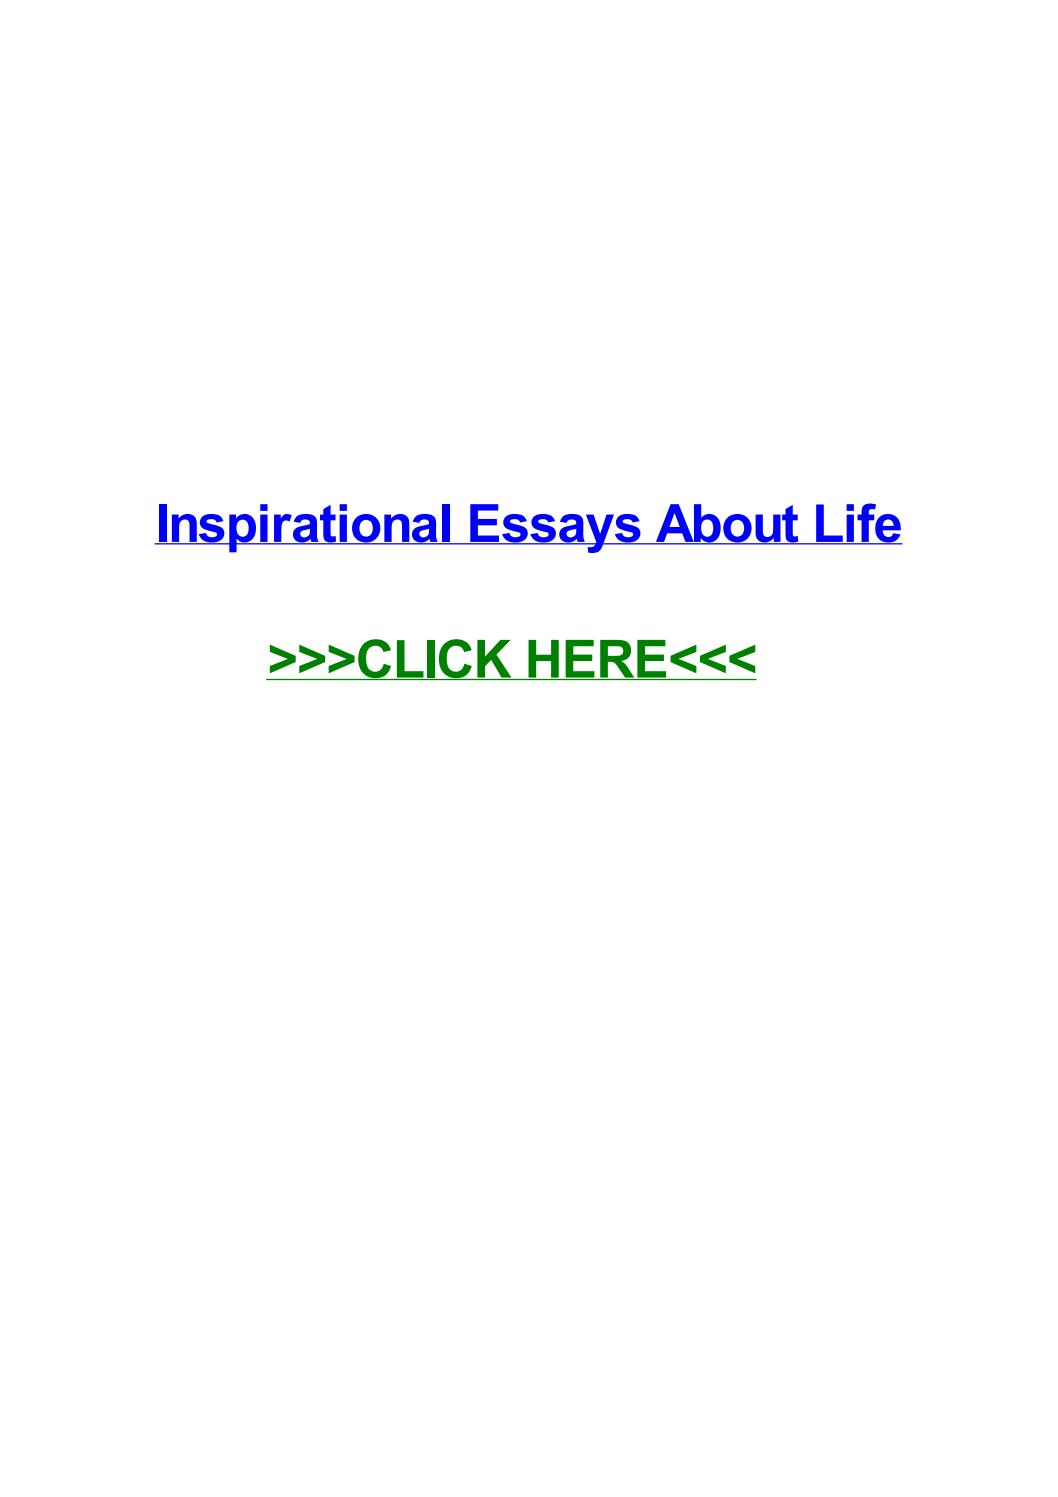 007 Essay Example Page 1 Inspirational Breathtaking Essays About Life And Struggles For Youth Full